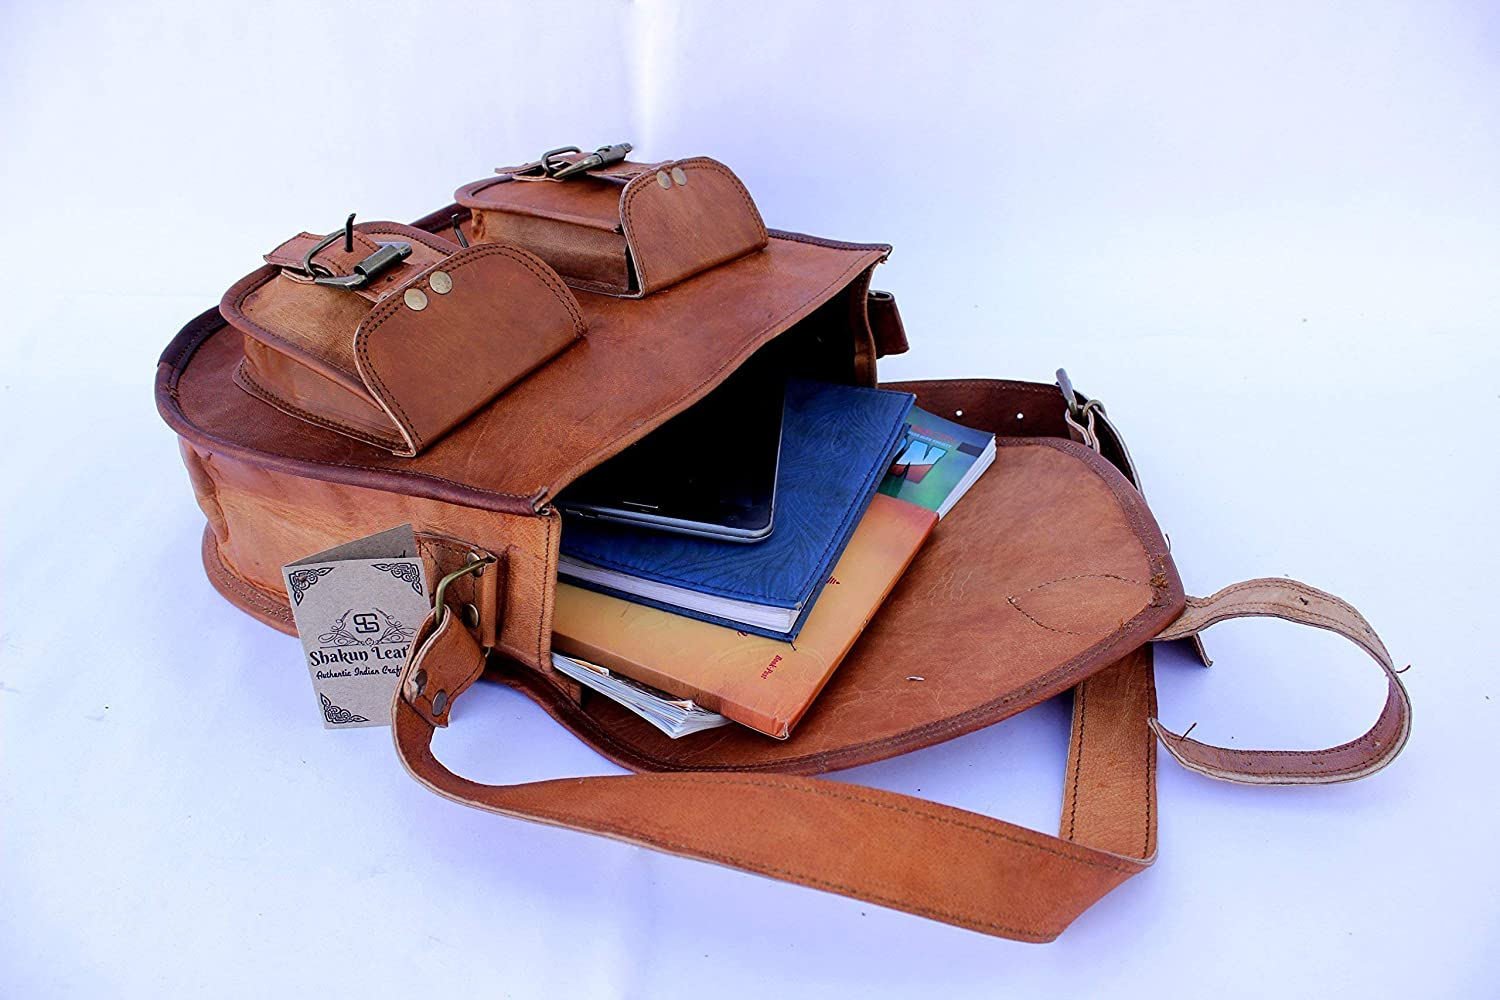 NEW YEAR 2019 100/% Pure Leather with free shipping 2 DAYS left Sankalp Leather Handmade Women Vintage Genuine Cross Body Bag Double Pocket Front Satchel SALE 10 x 13 Inch